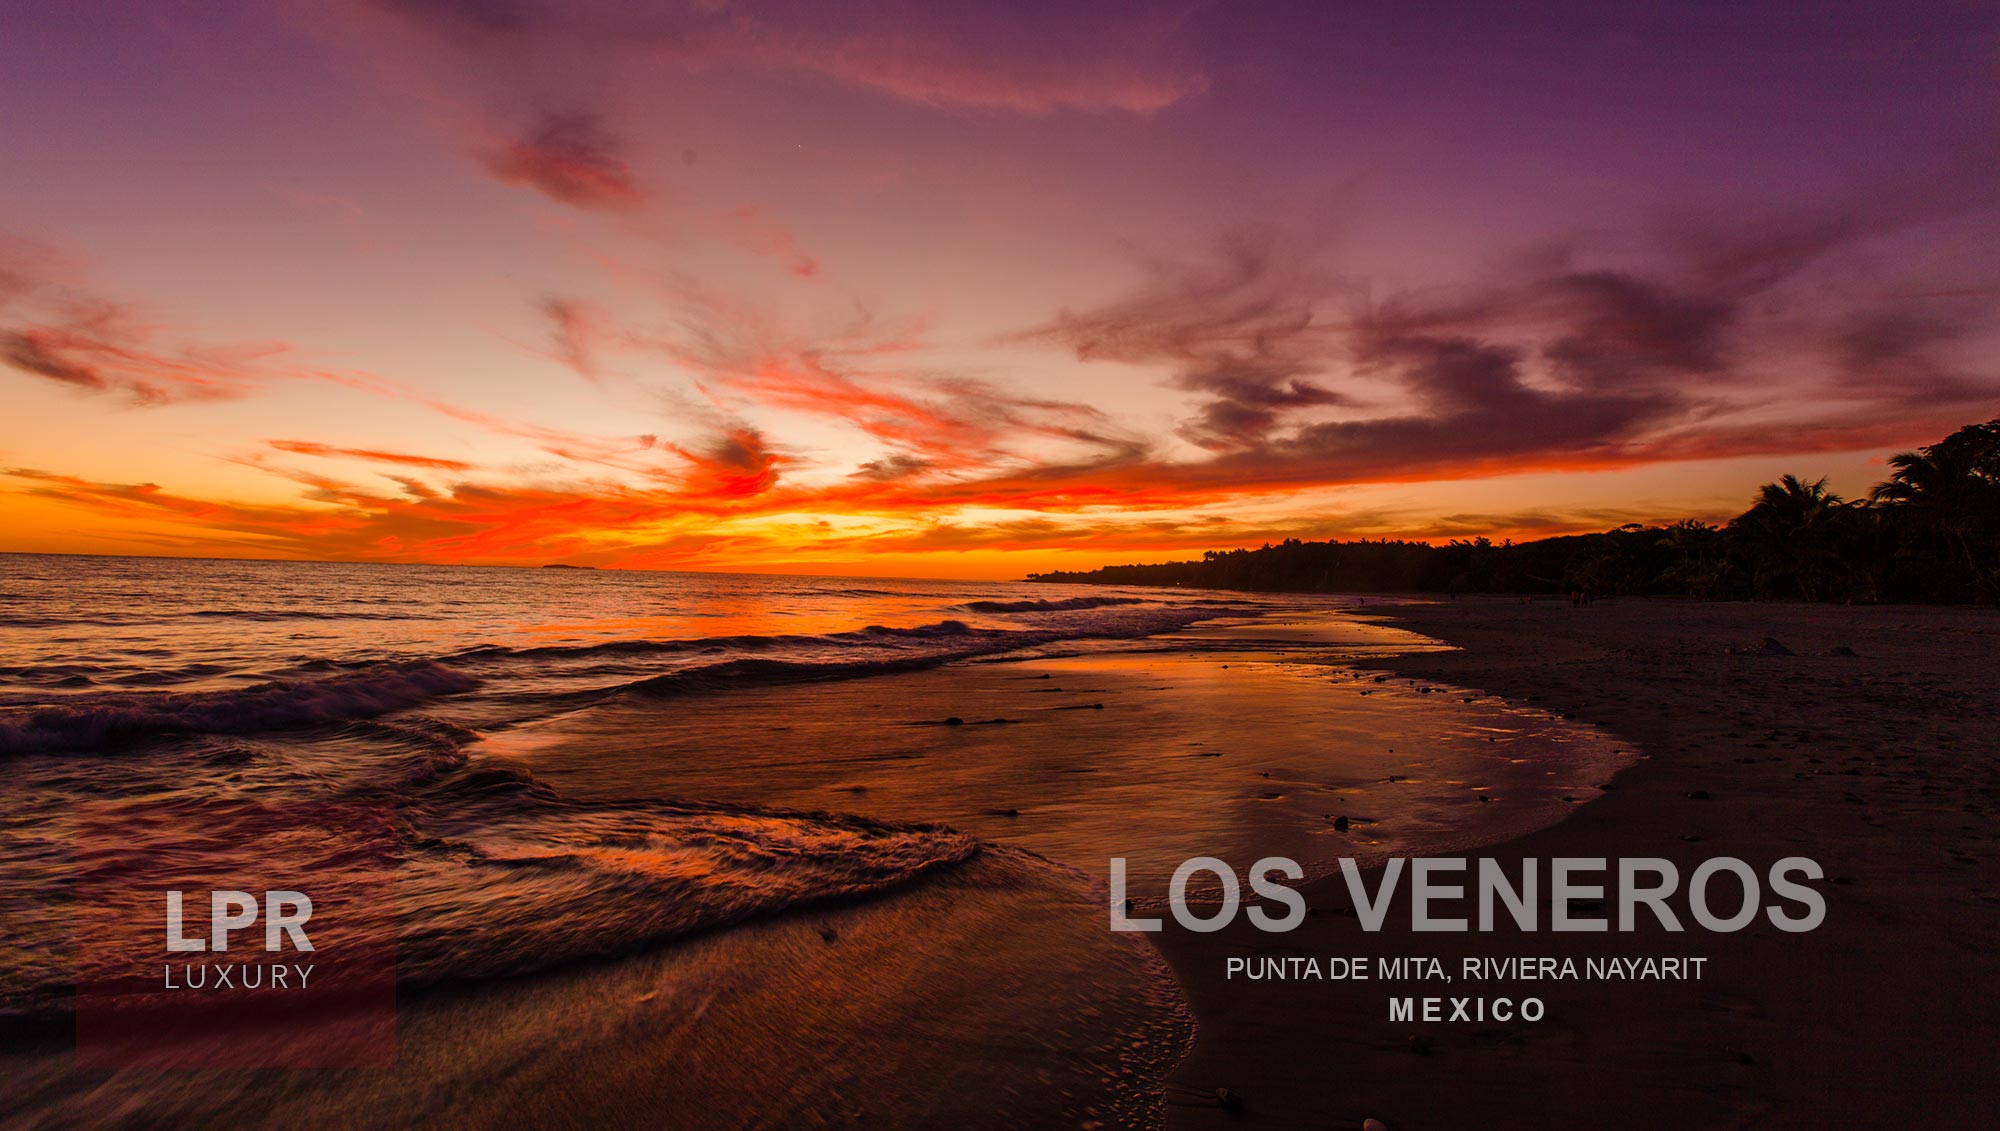 Los Veneros Condos - Luxury Punta de Mita - Puerto Vallarta real estate and vacation rentals - Mexico